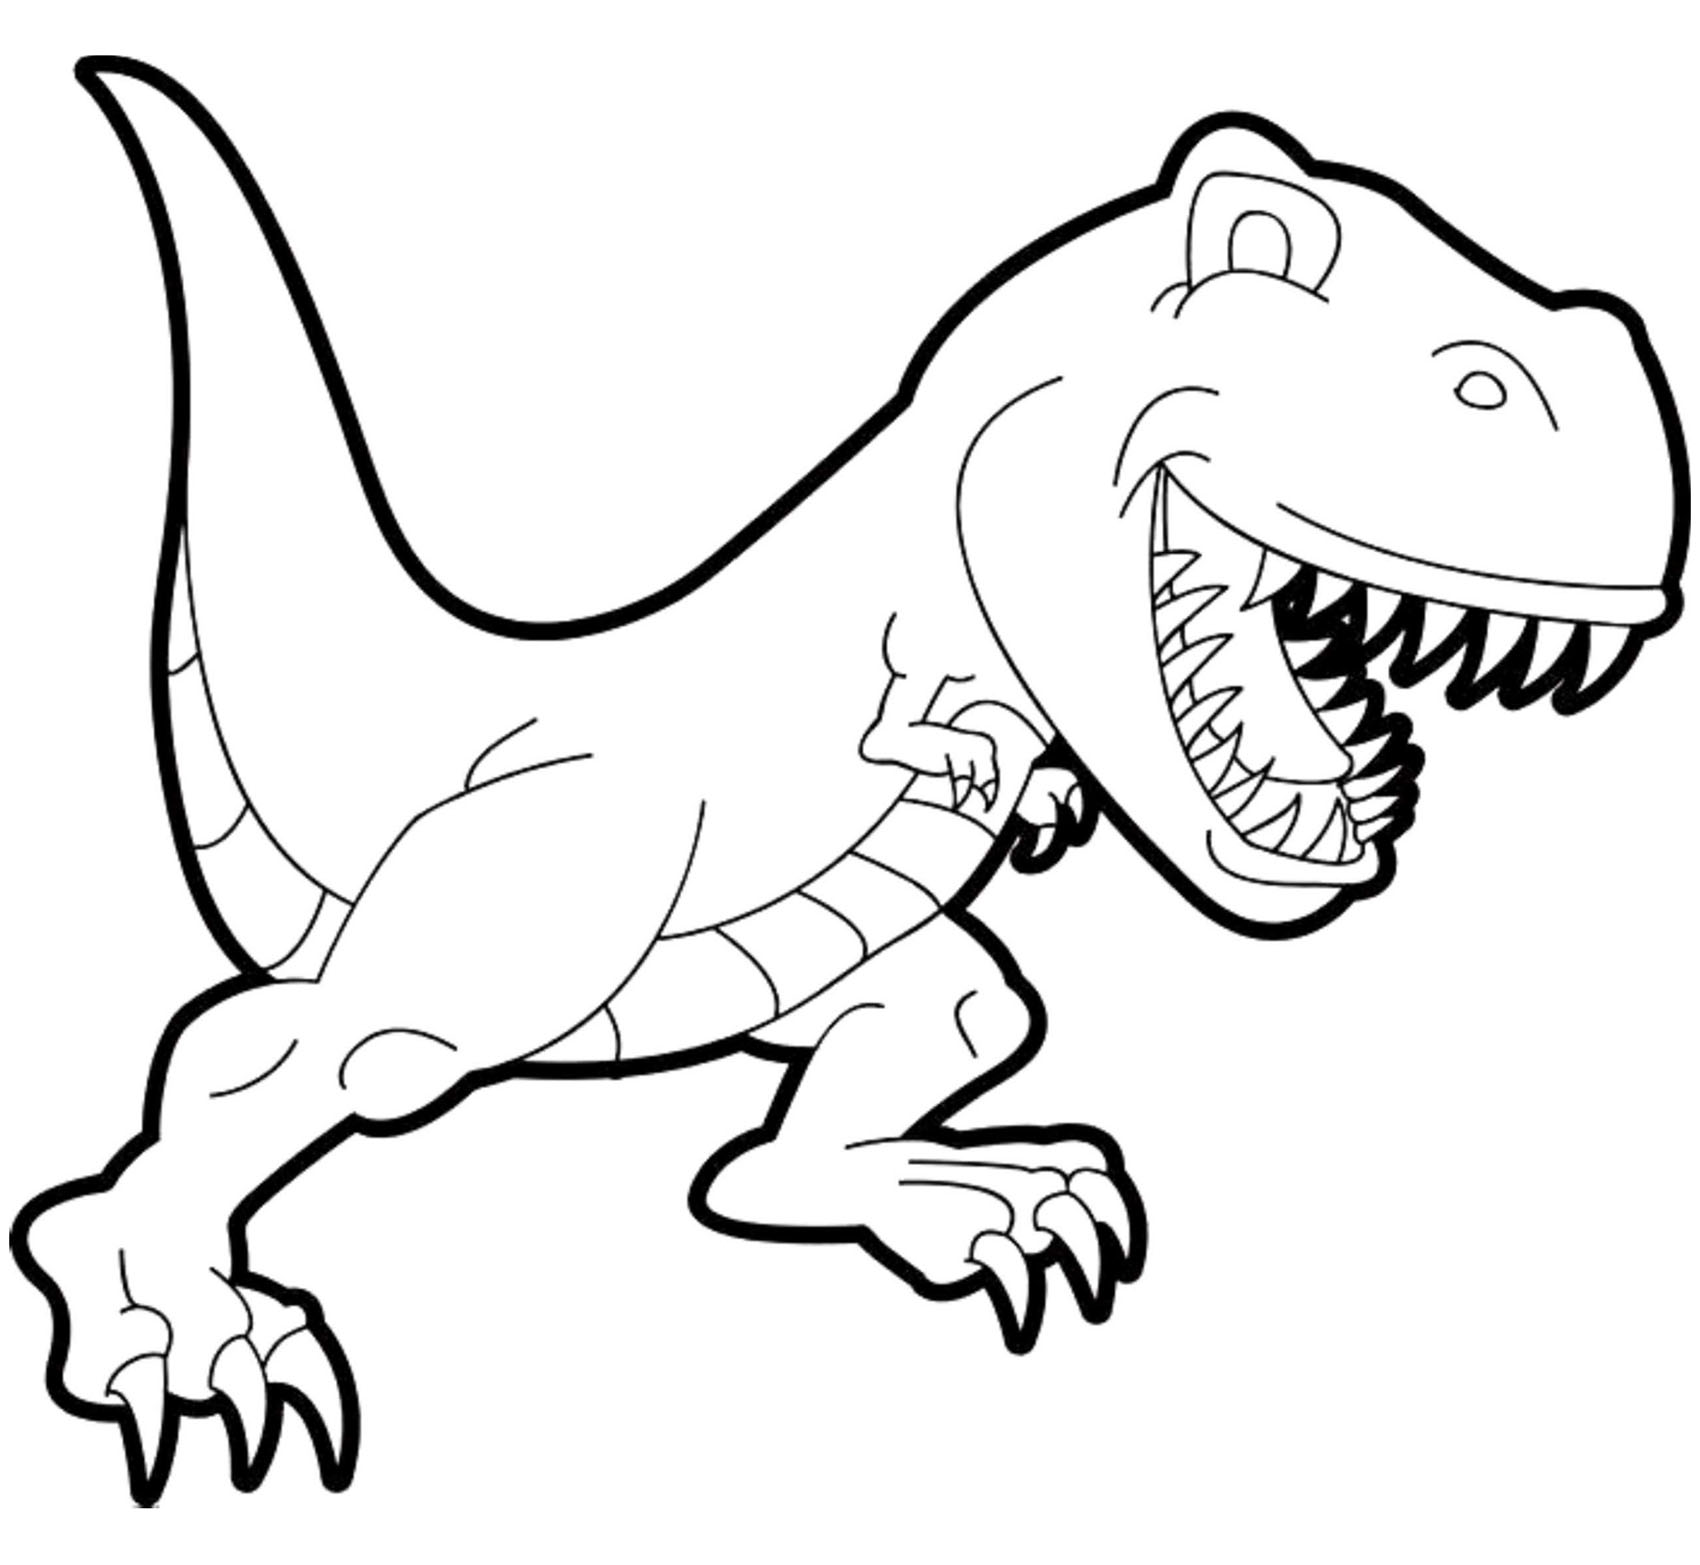 free dinosaur pictures to print and color free dinosaur printable coloring pages coloring home and print free to dinosaur pictures color